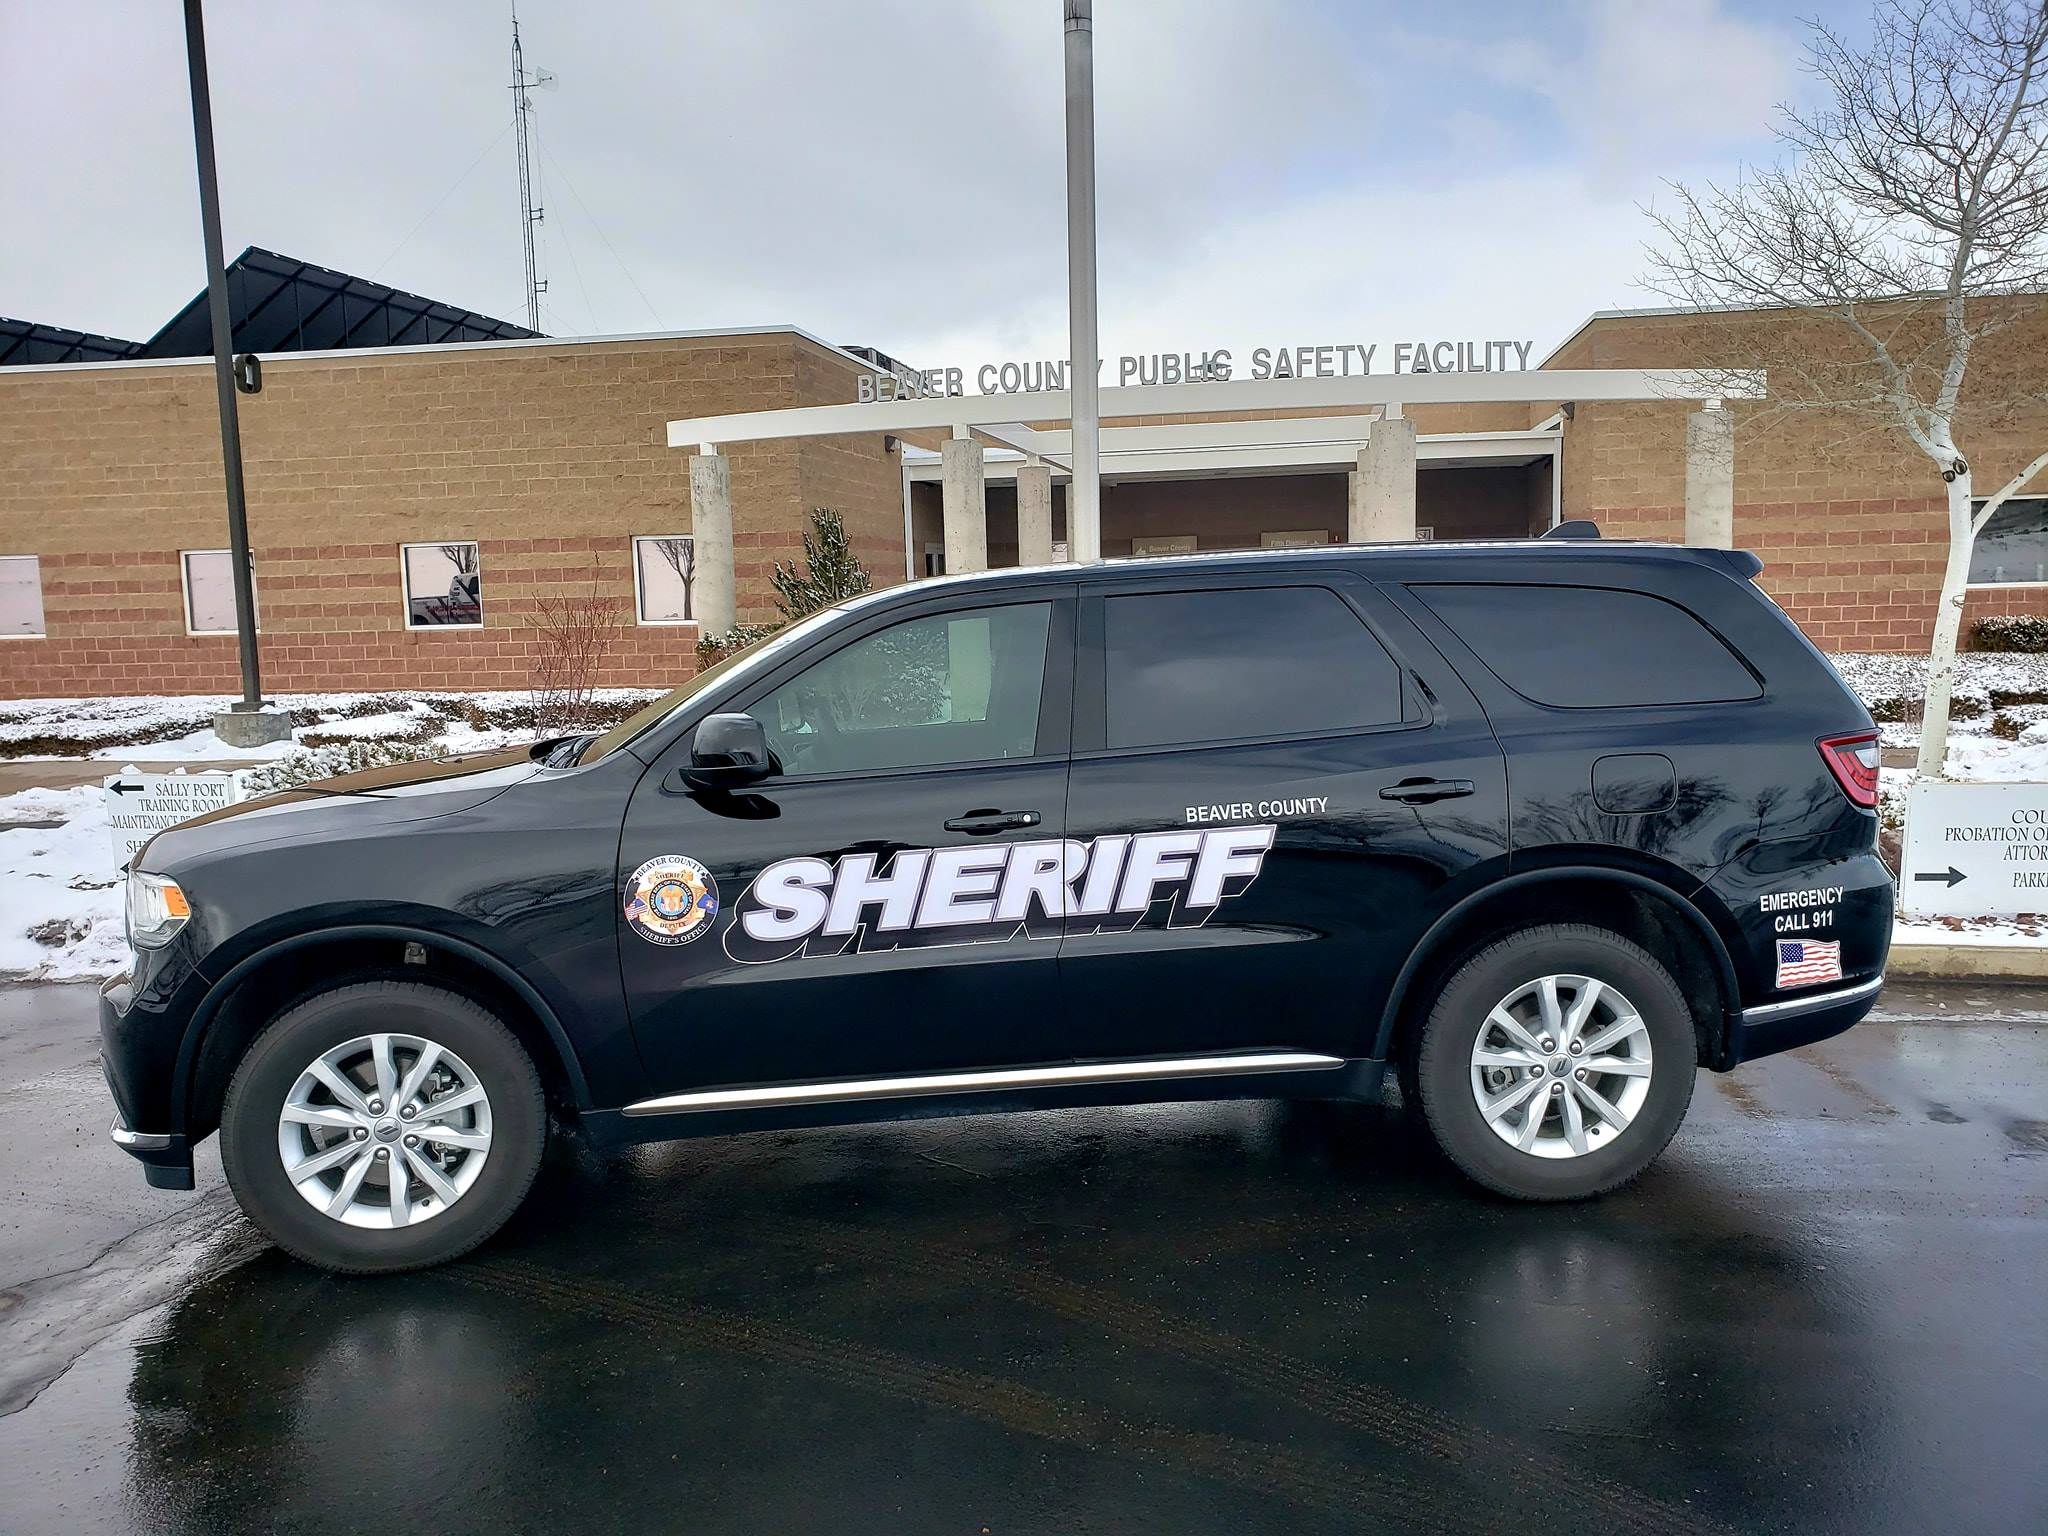 BCSO Patrol Vehicle